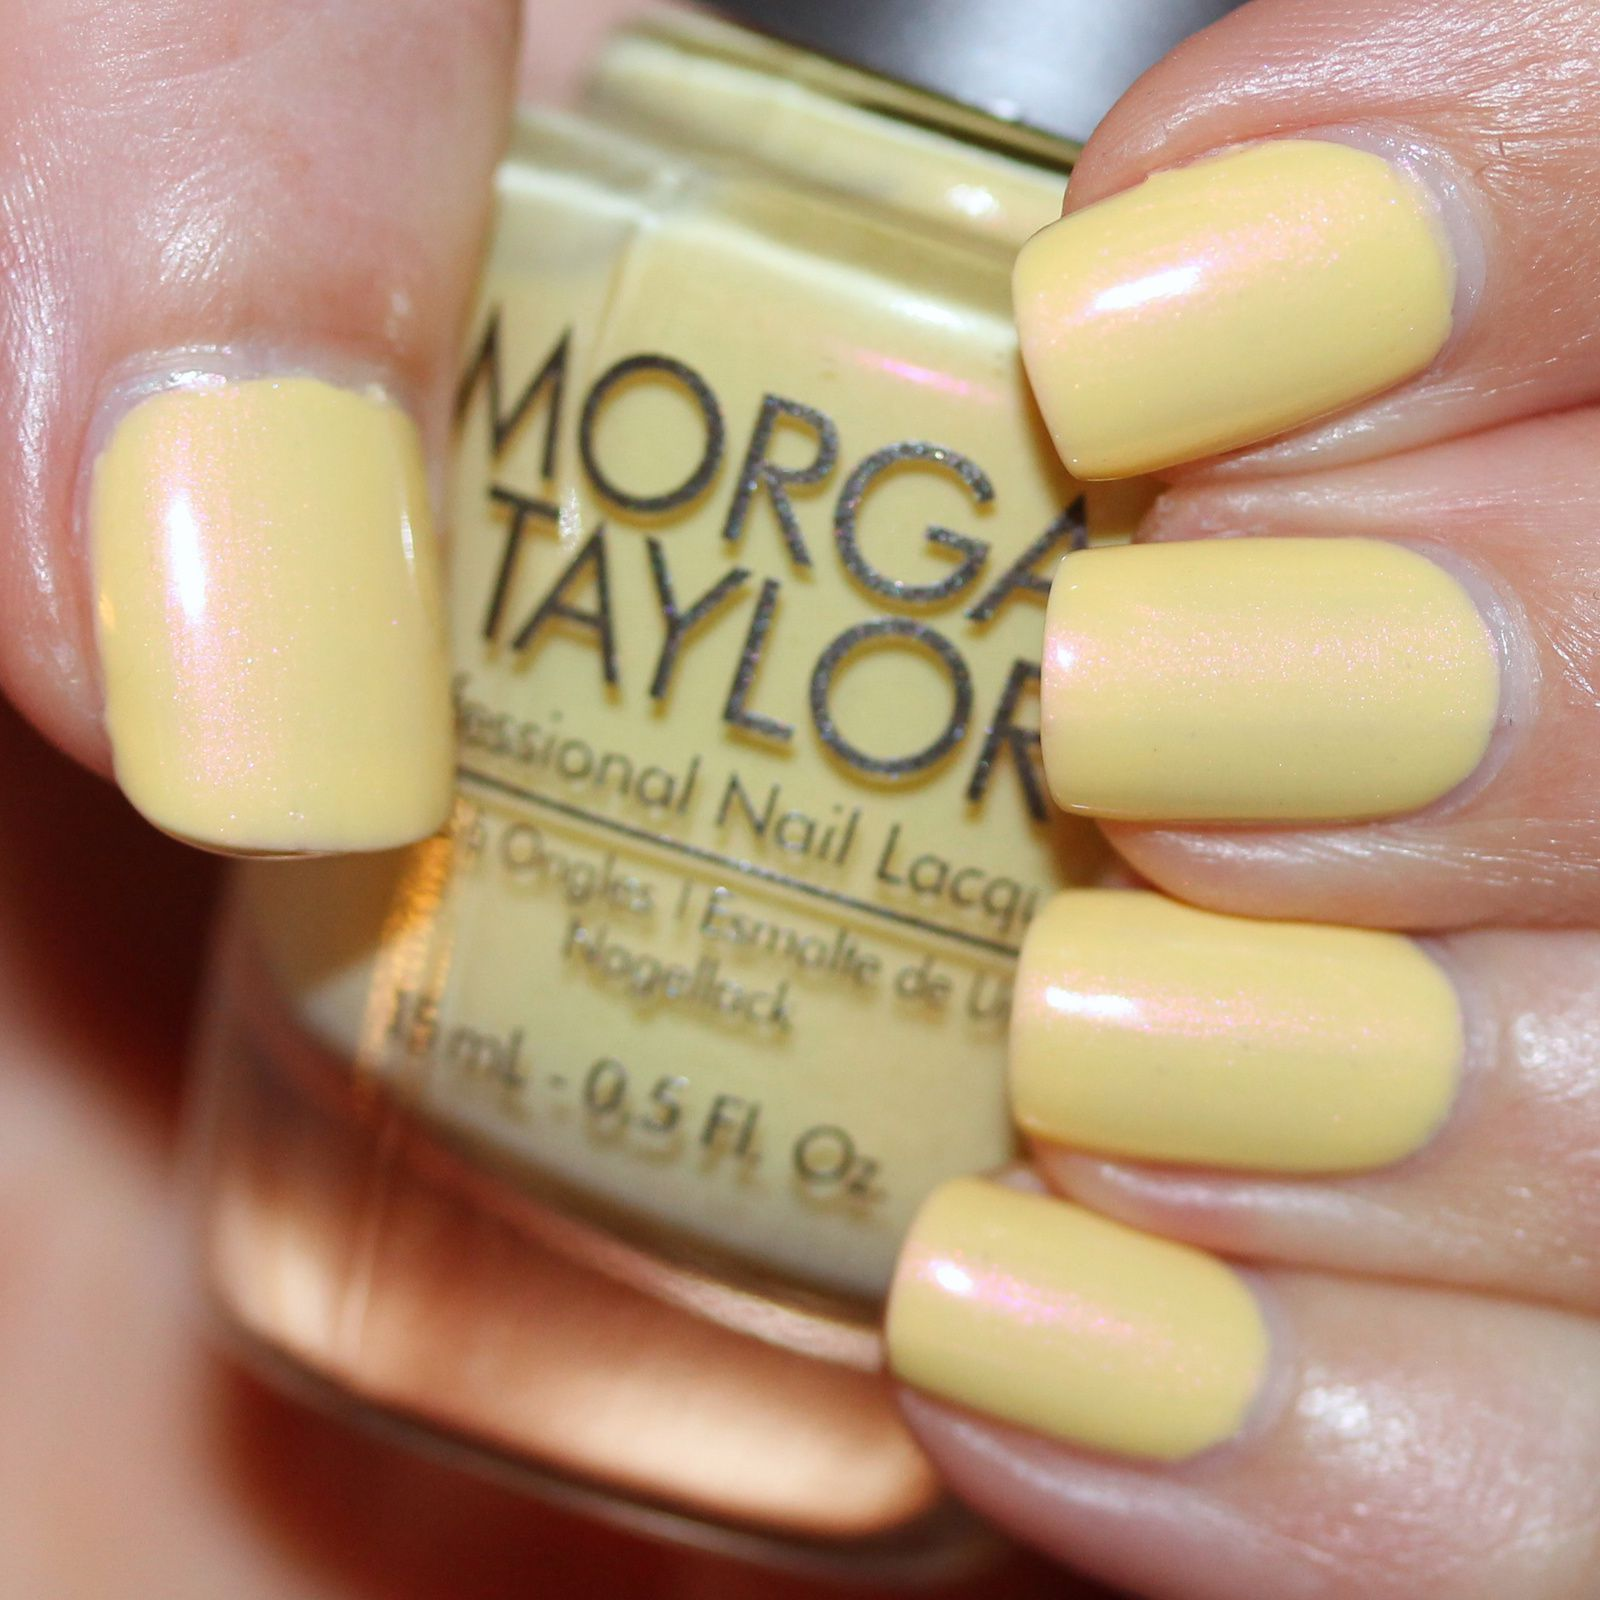 Sally Hansen Complete Care 4-in-1 Extra Moisturizing Nail Treatment / Morgan Taylor Days in the Sun / Poshe Top Coat